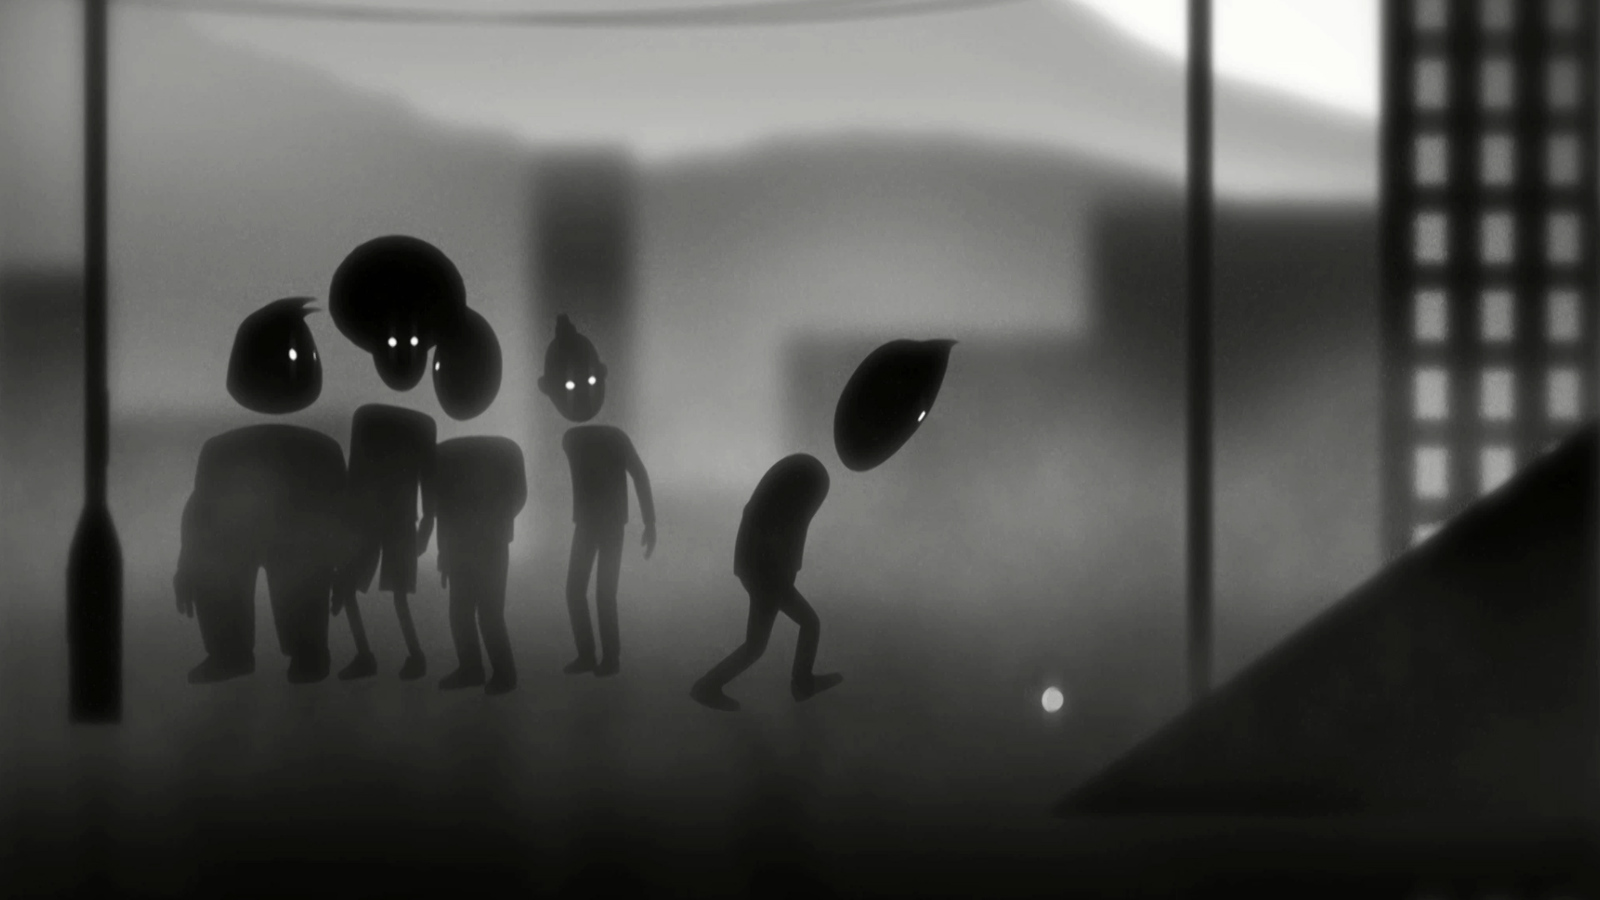 Still from the animation The boy I used to know.